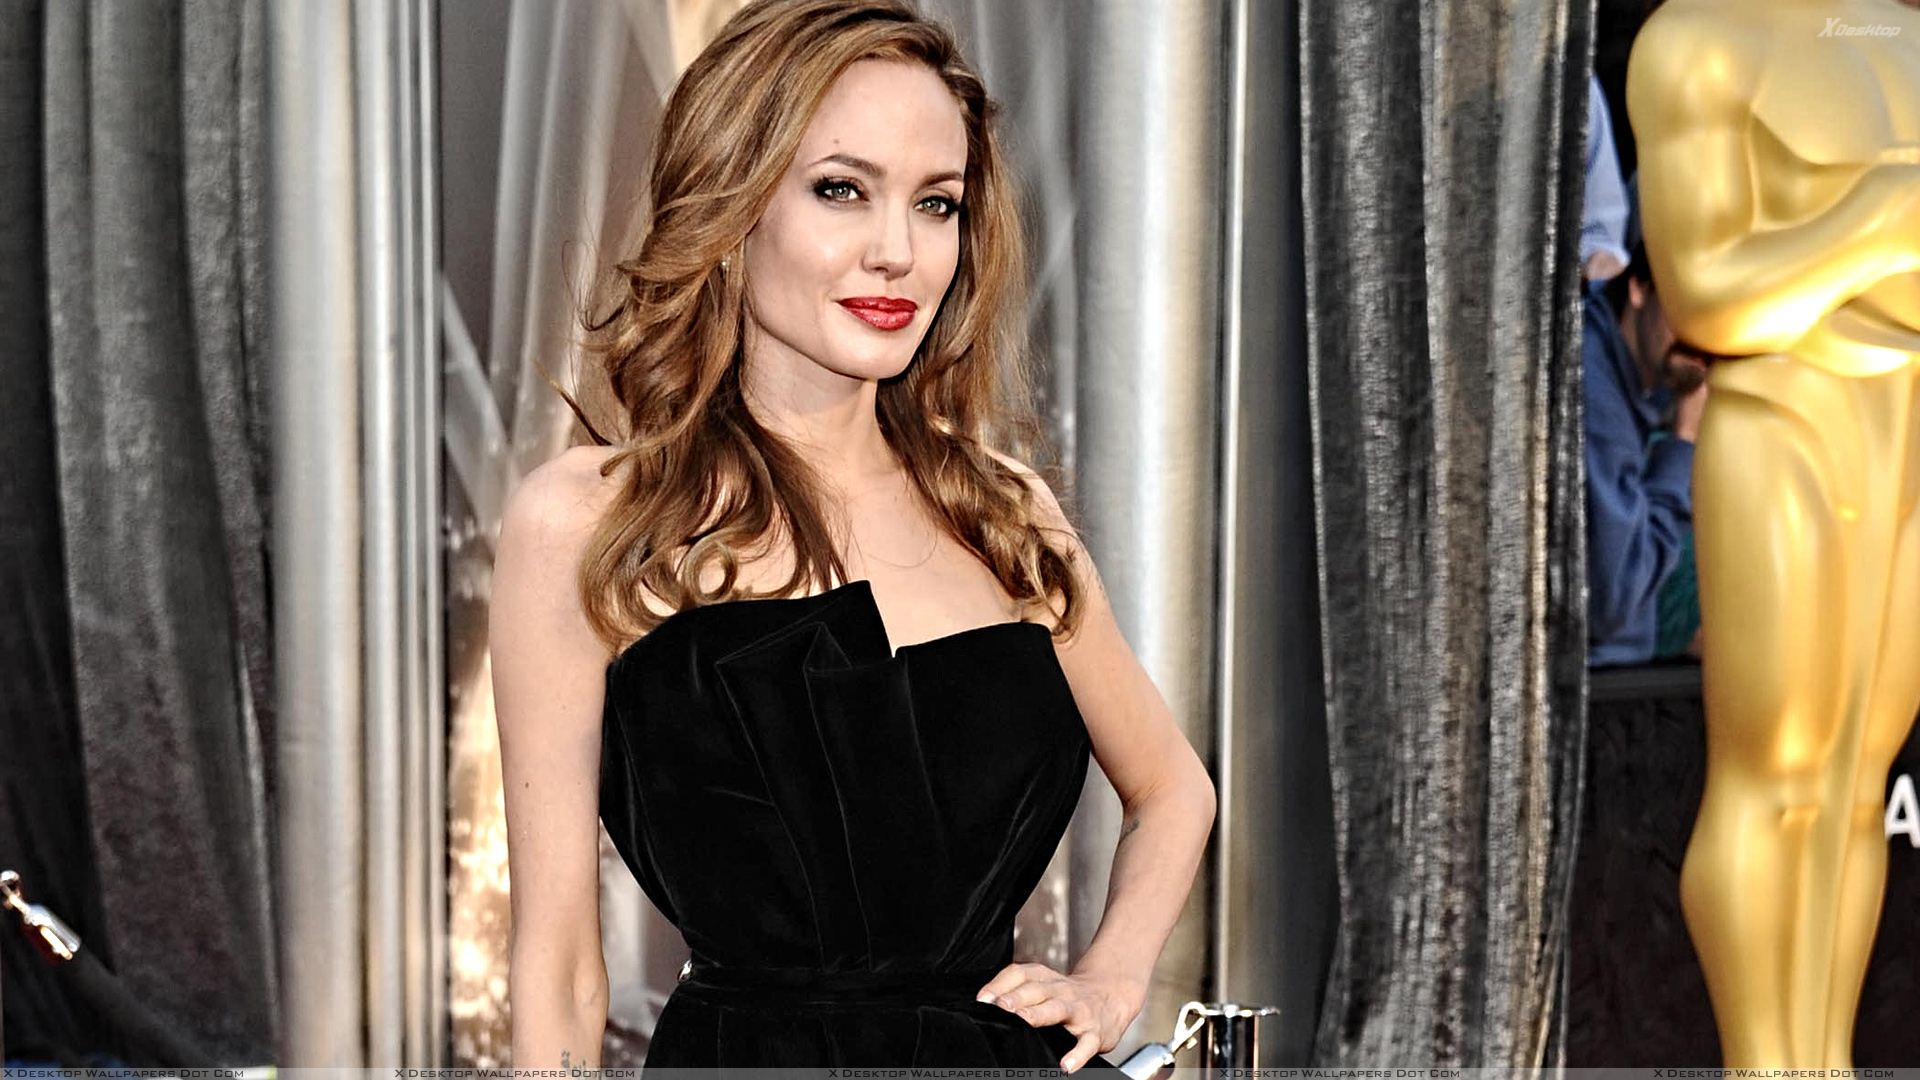 angelina jolie wallpapers, photos & images in hd